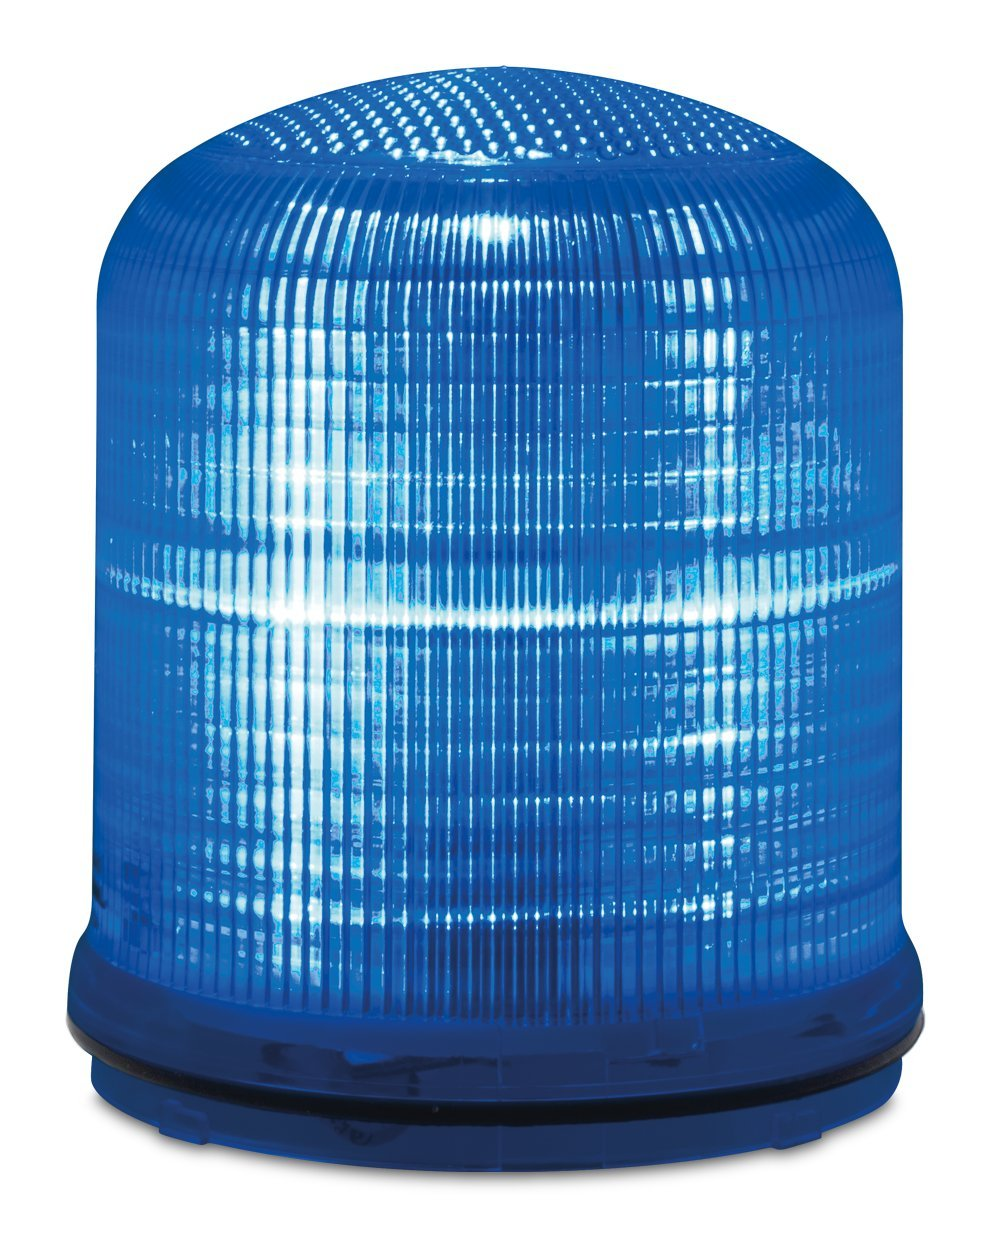 Required Base Sold Separately Amber Federal Signal SLM200A Streamline Modular Multi-Pattern LED Beacon Polycarbonate